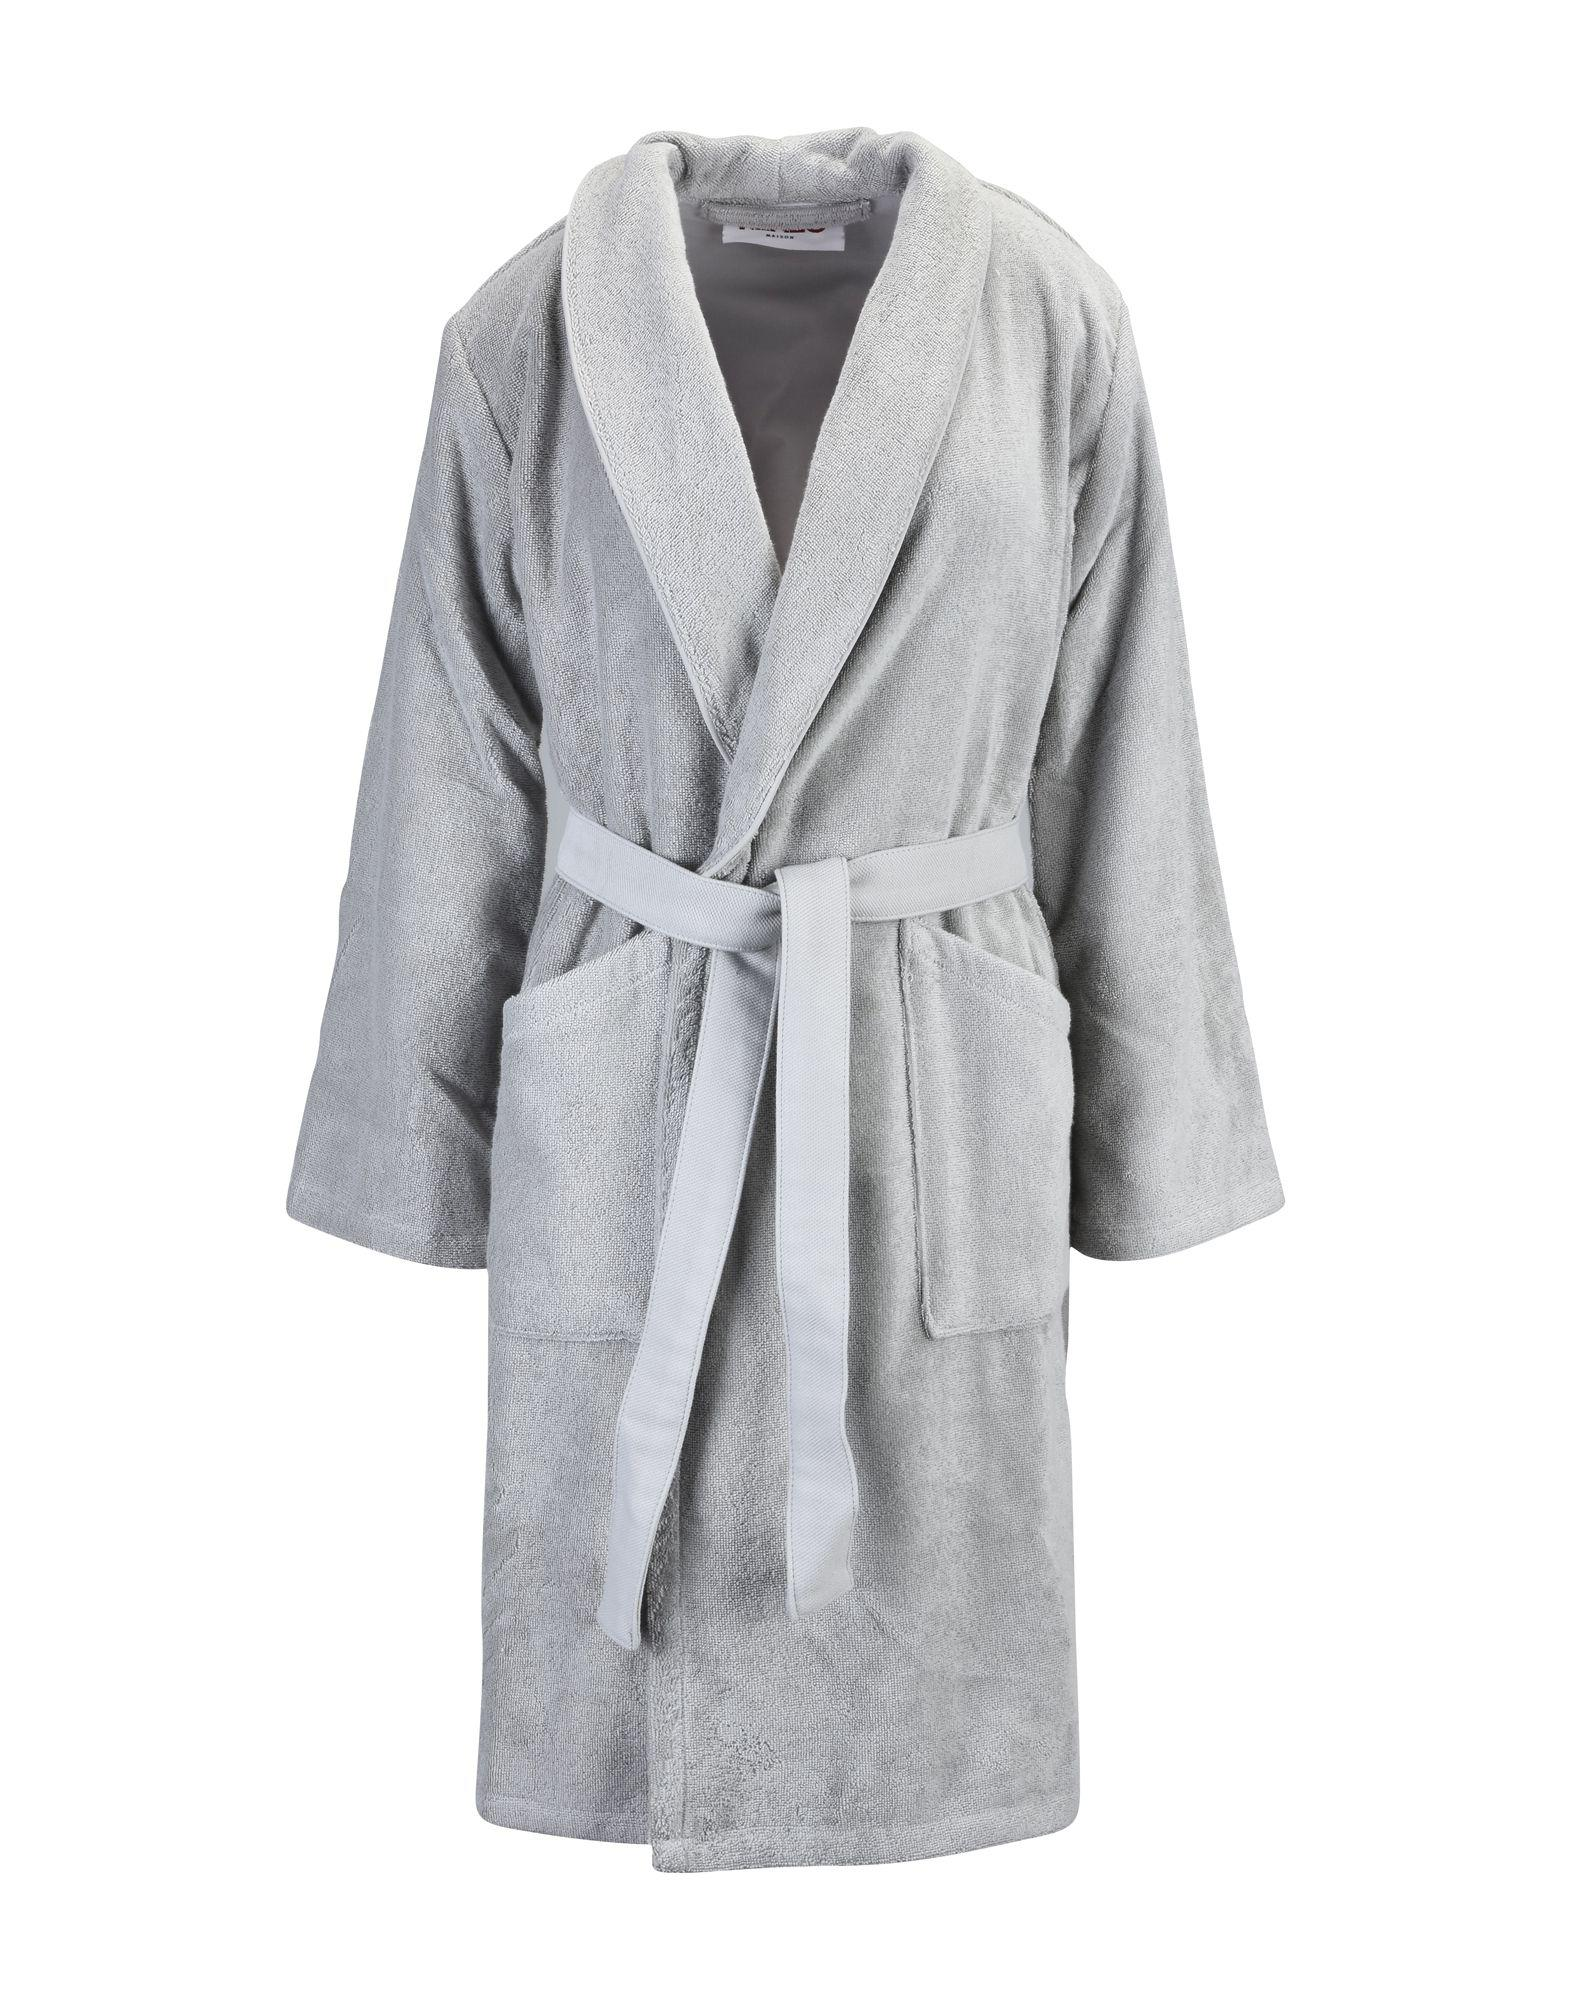 KENZO Towelling Dressing Gown in Gray for Men - Lyst 0e527effa